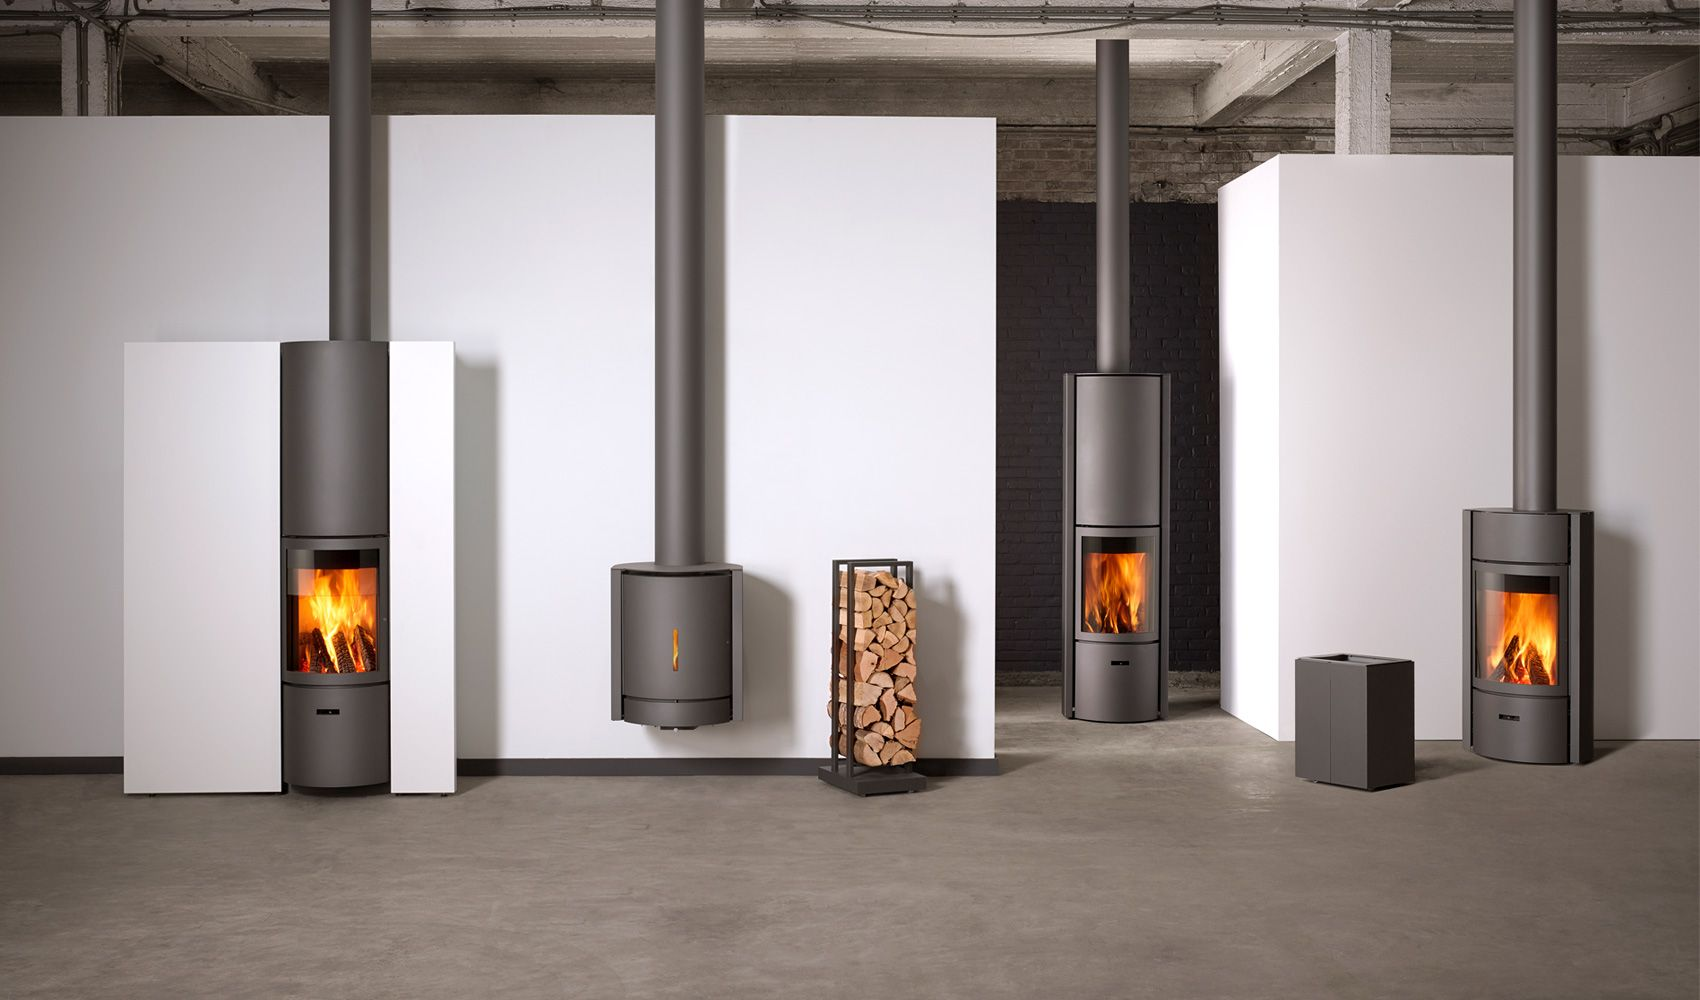 Wood stoves, fitted stoves or ready-to-fit fireplaces